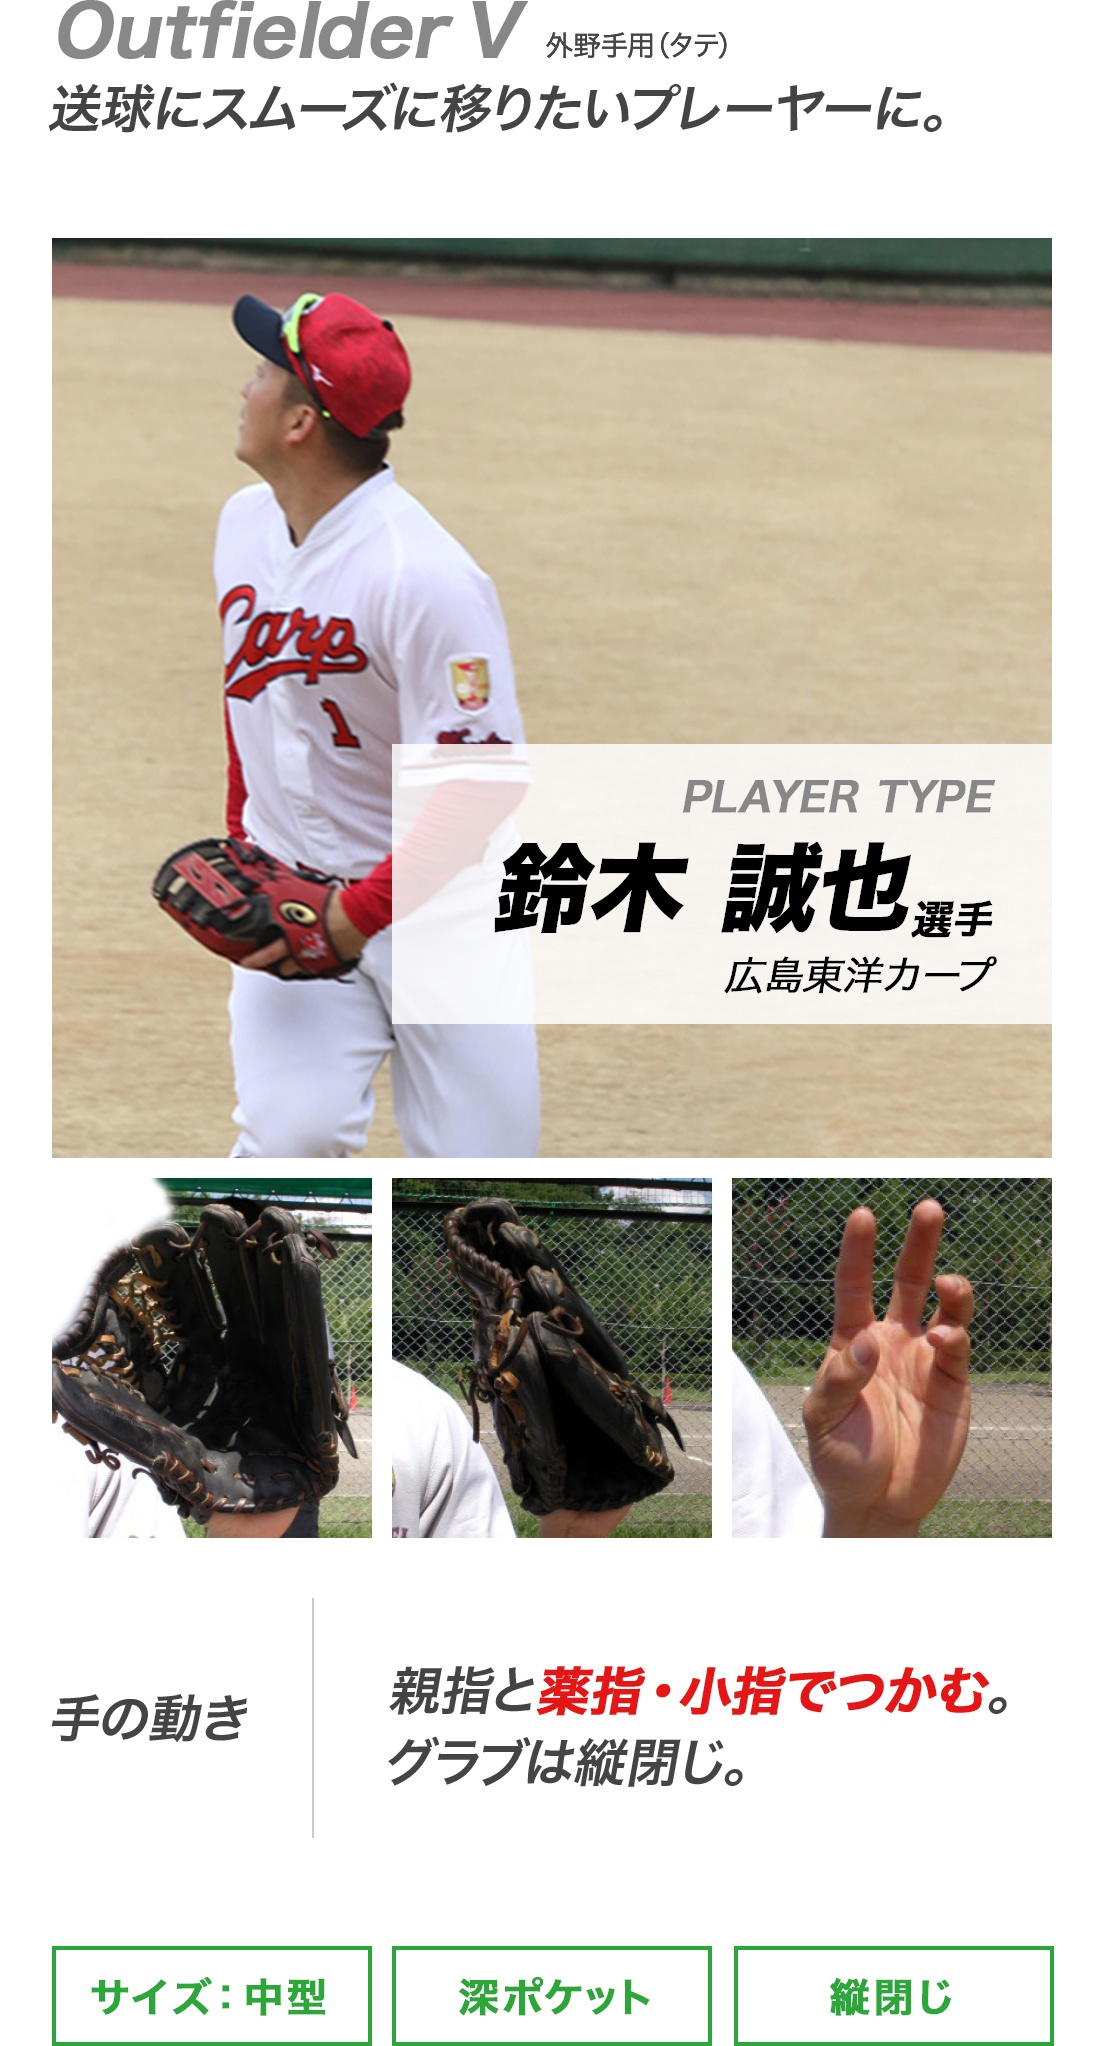 Outfielder V 送球にスムーズに移りたいプレーヤーに。